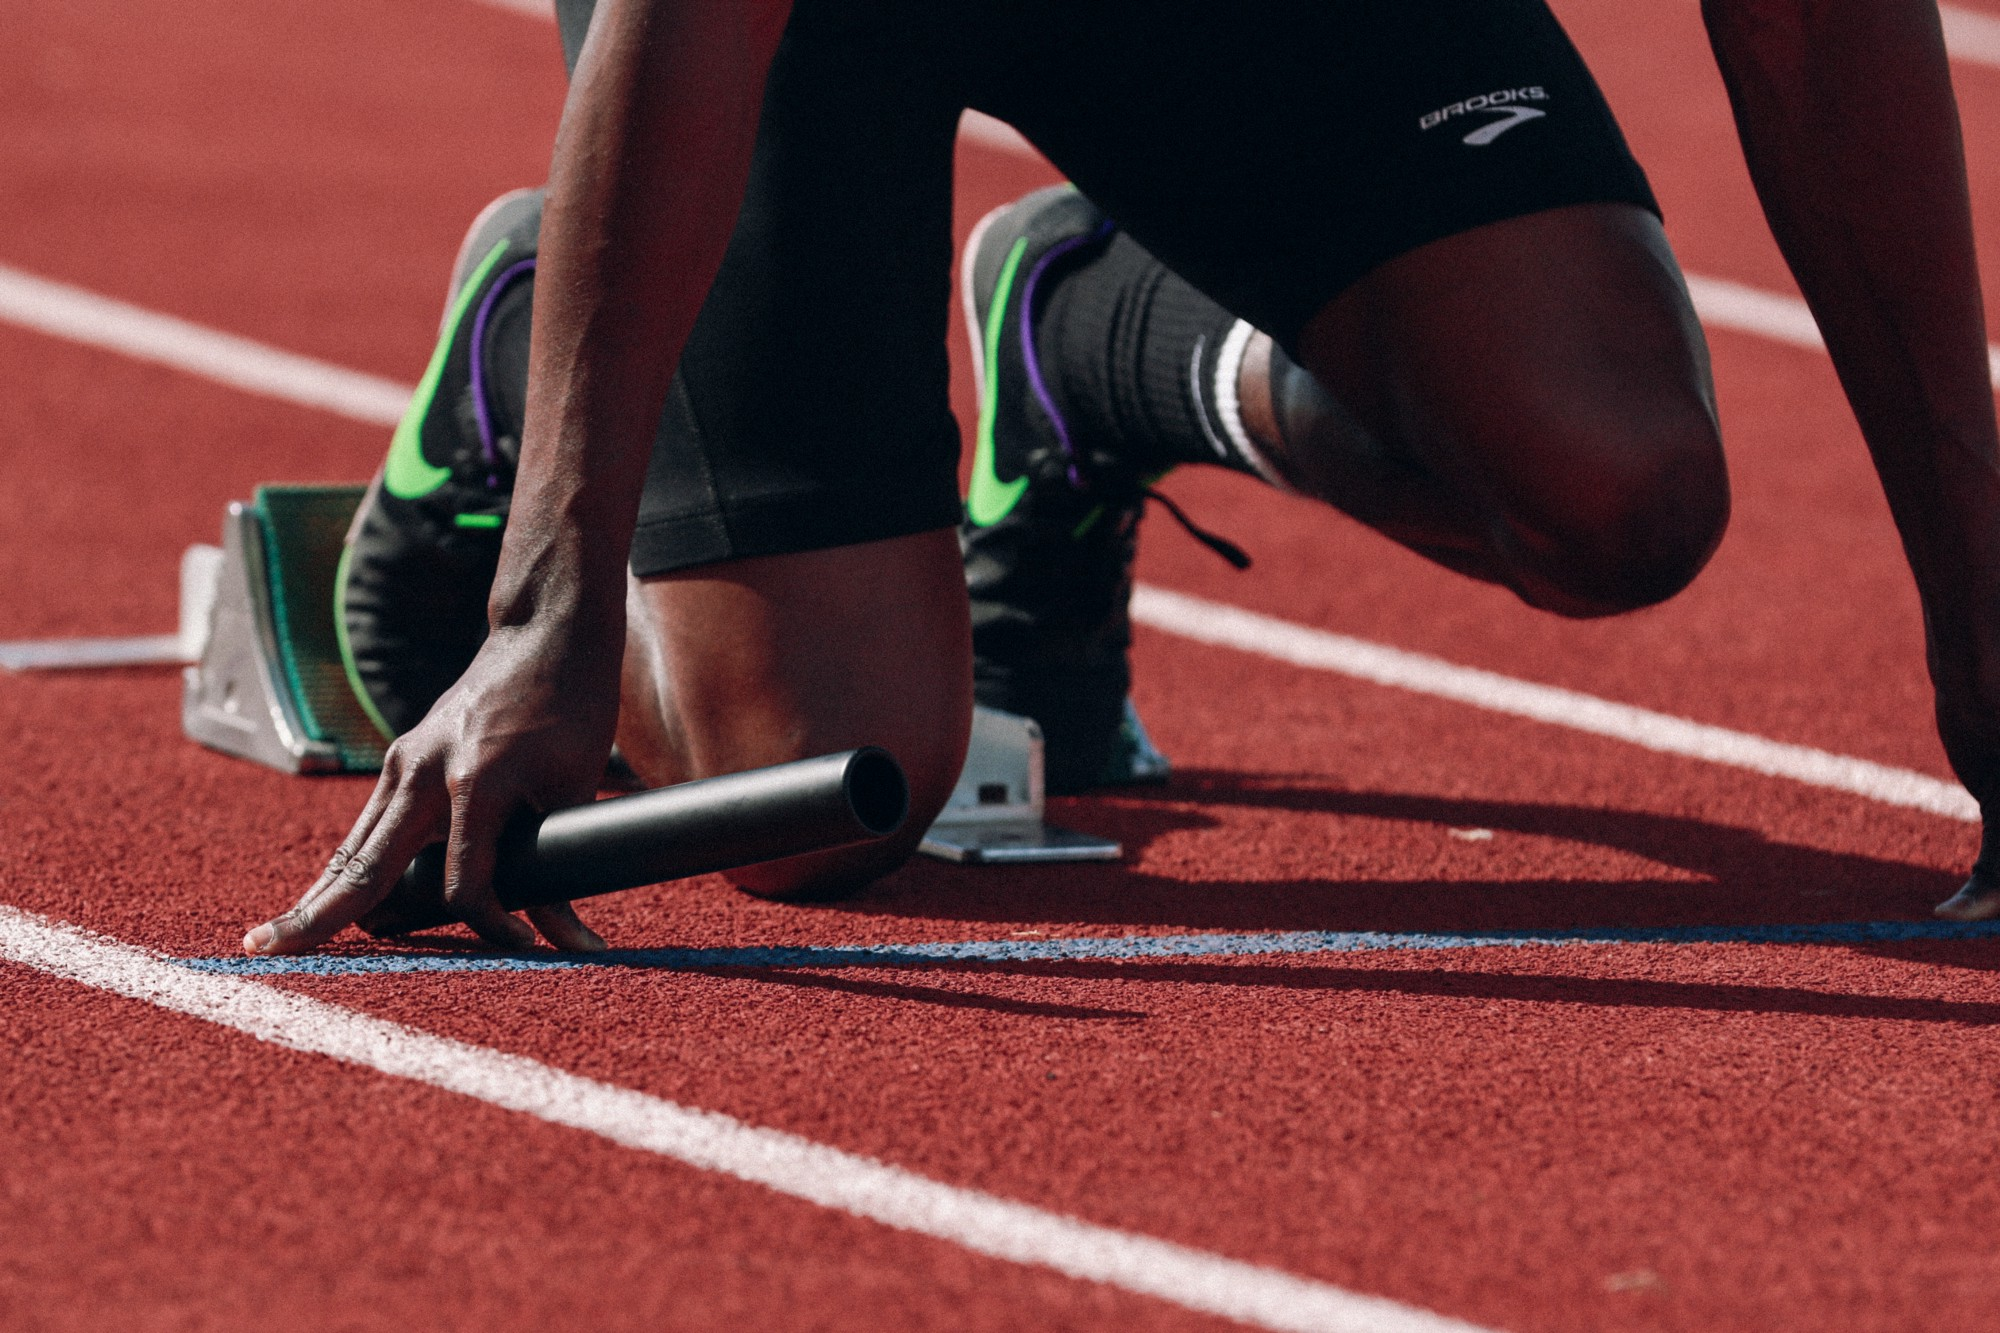 Legs and arms of a person in the set position on a running track. He's ready to run fast, but not age too fast.